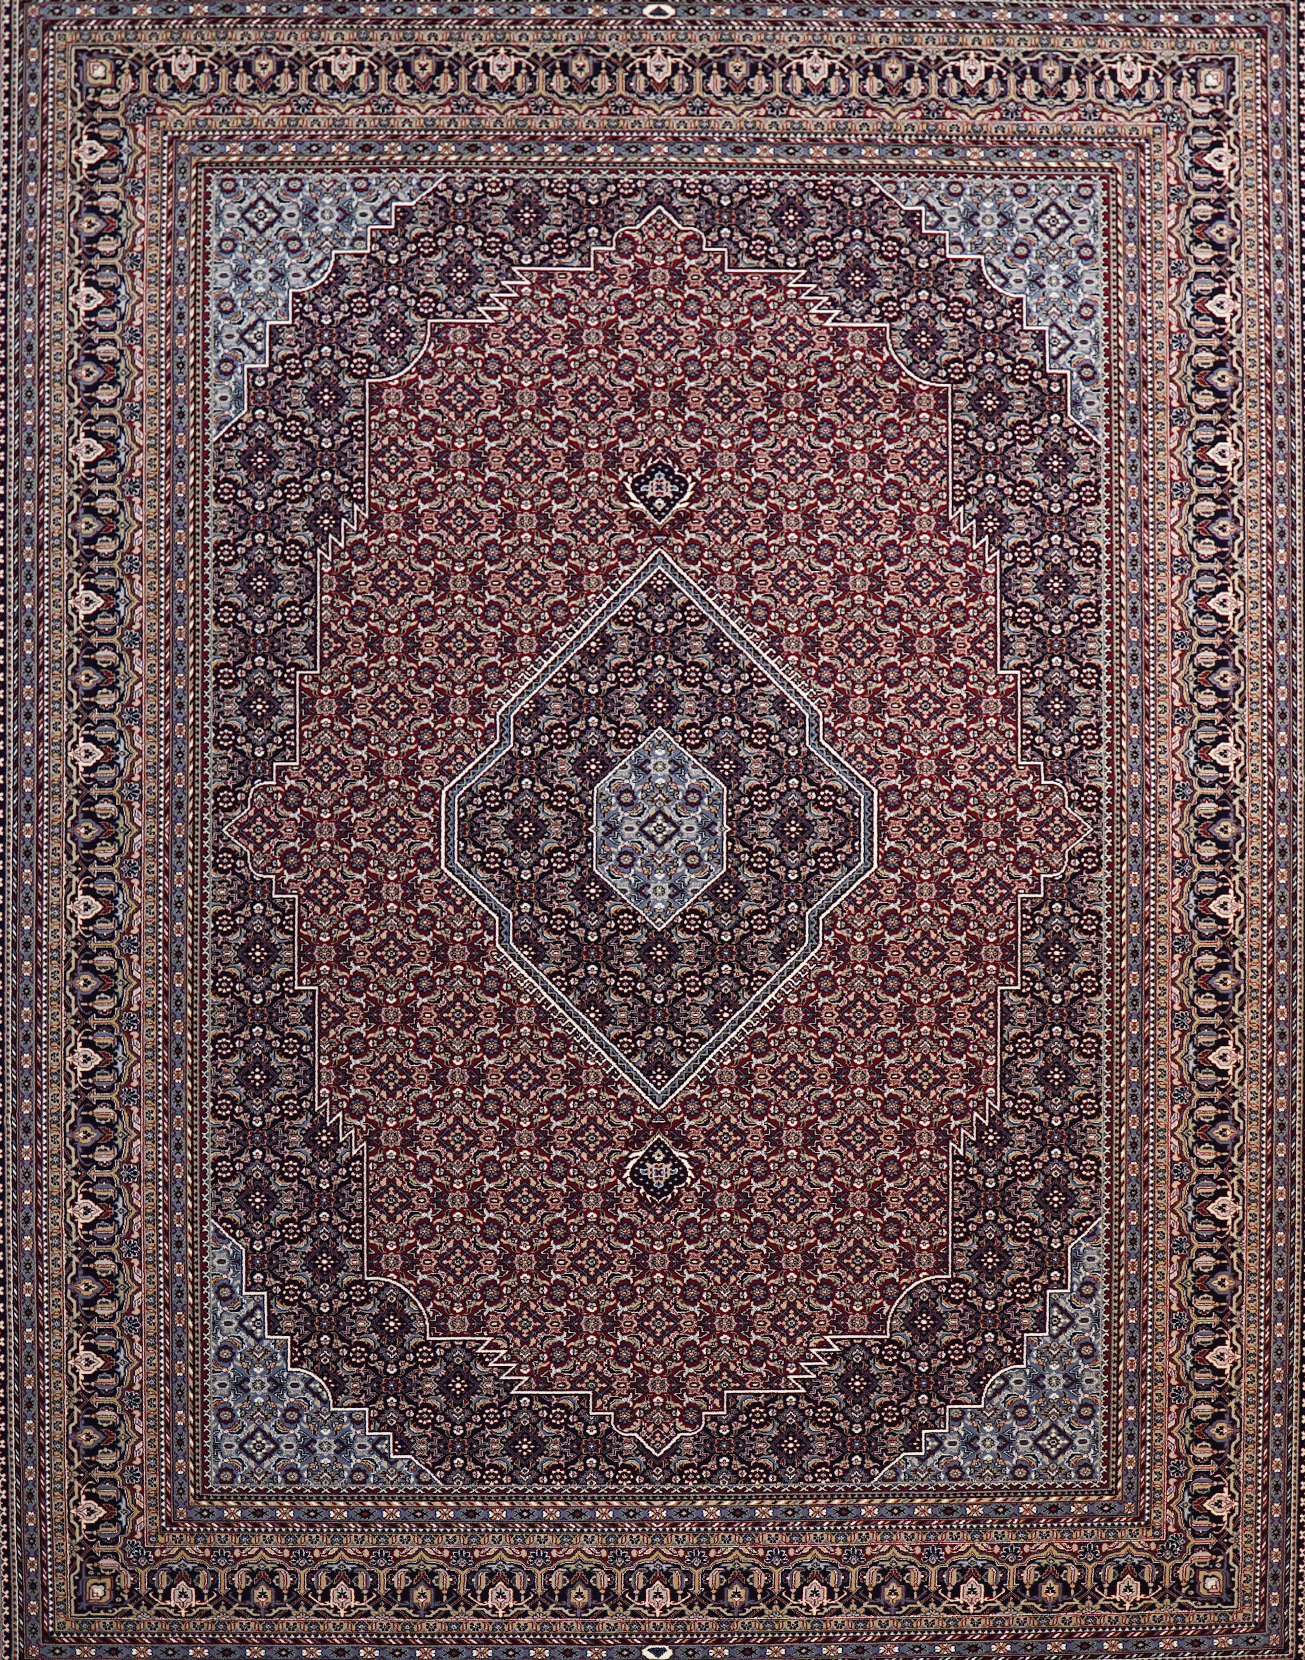 Traditional Red Wool Carpet Area Rug Imperial Carpet Home